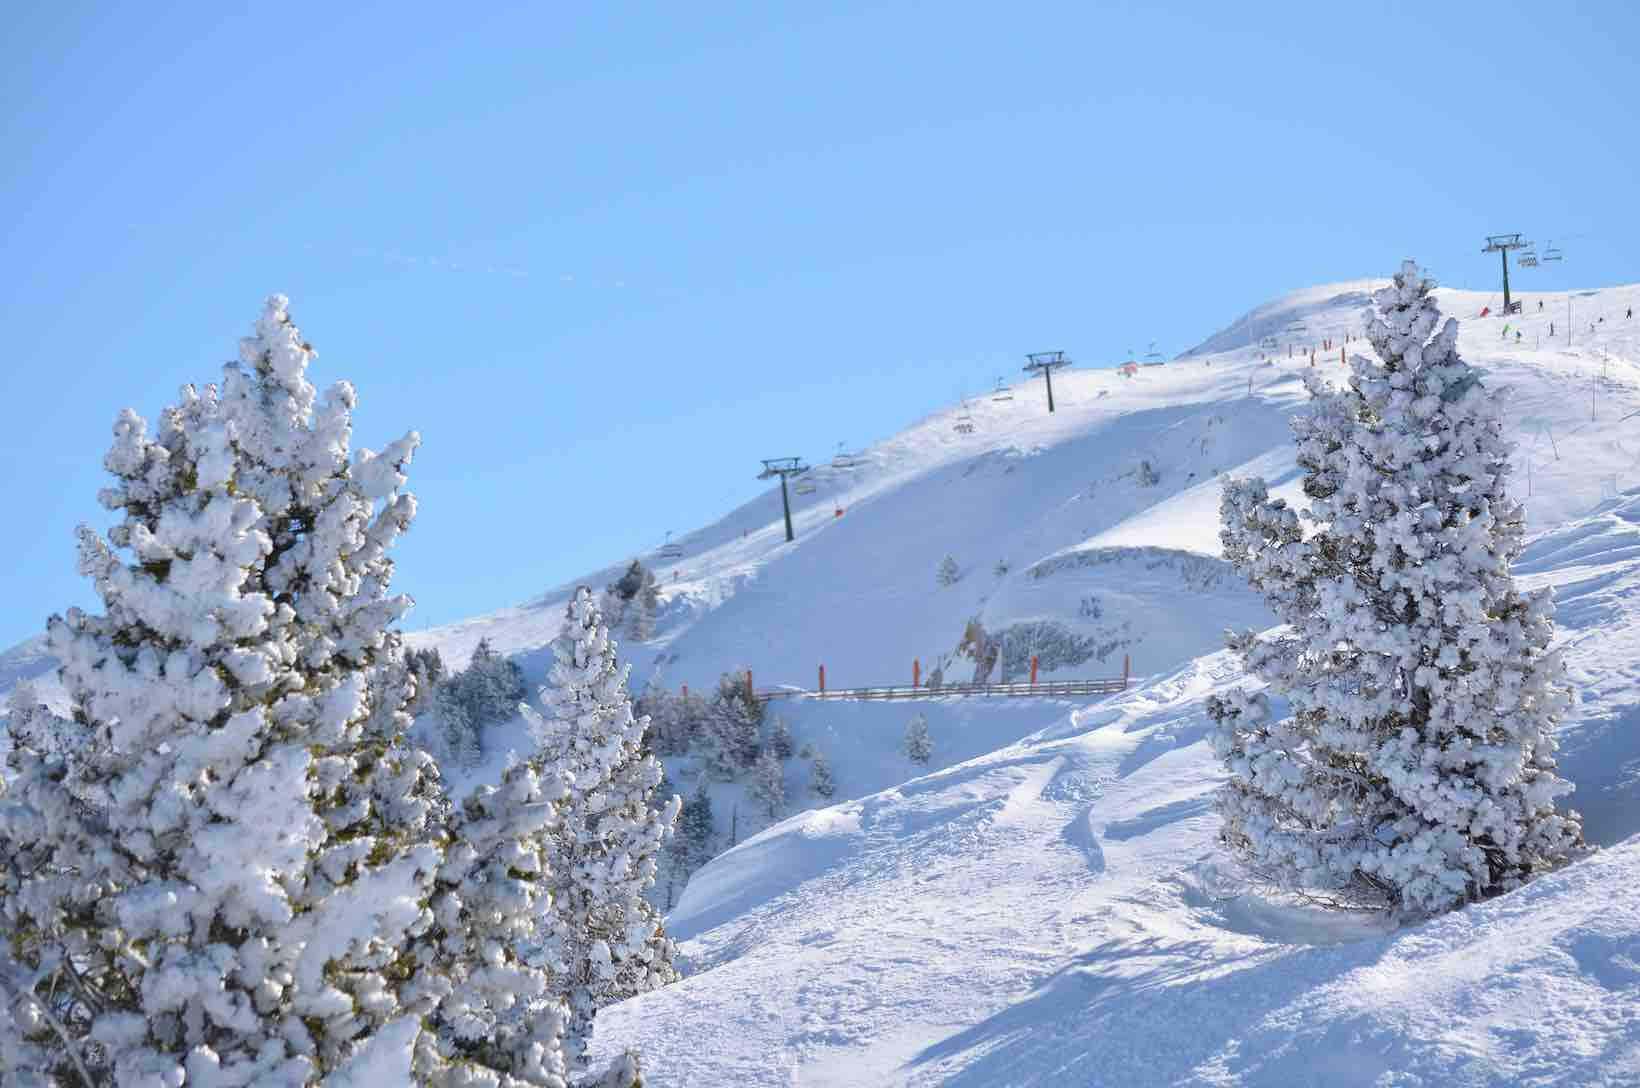 Photo of ski lifts and snowy mountains at Baqueira Beret